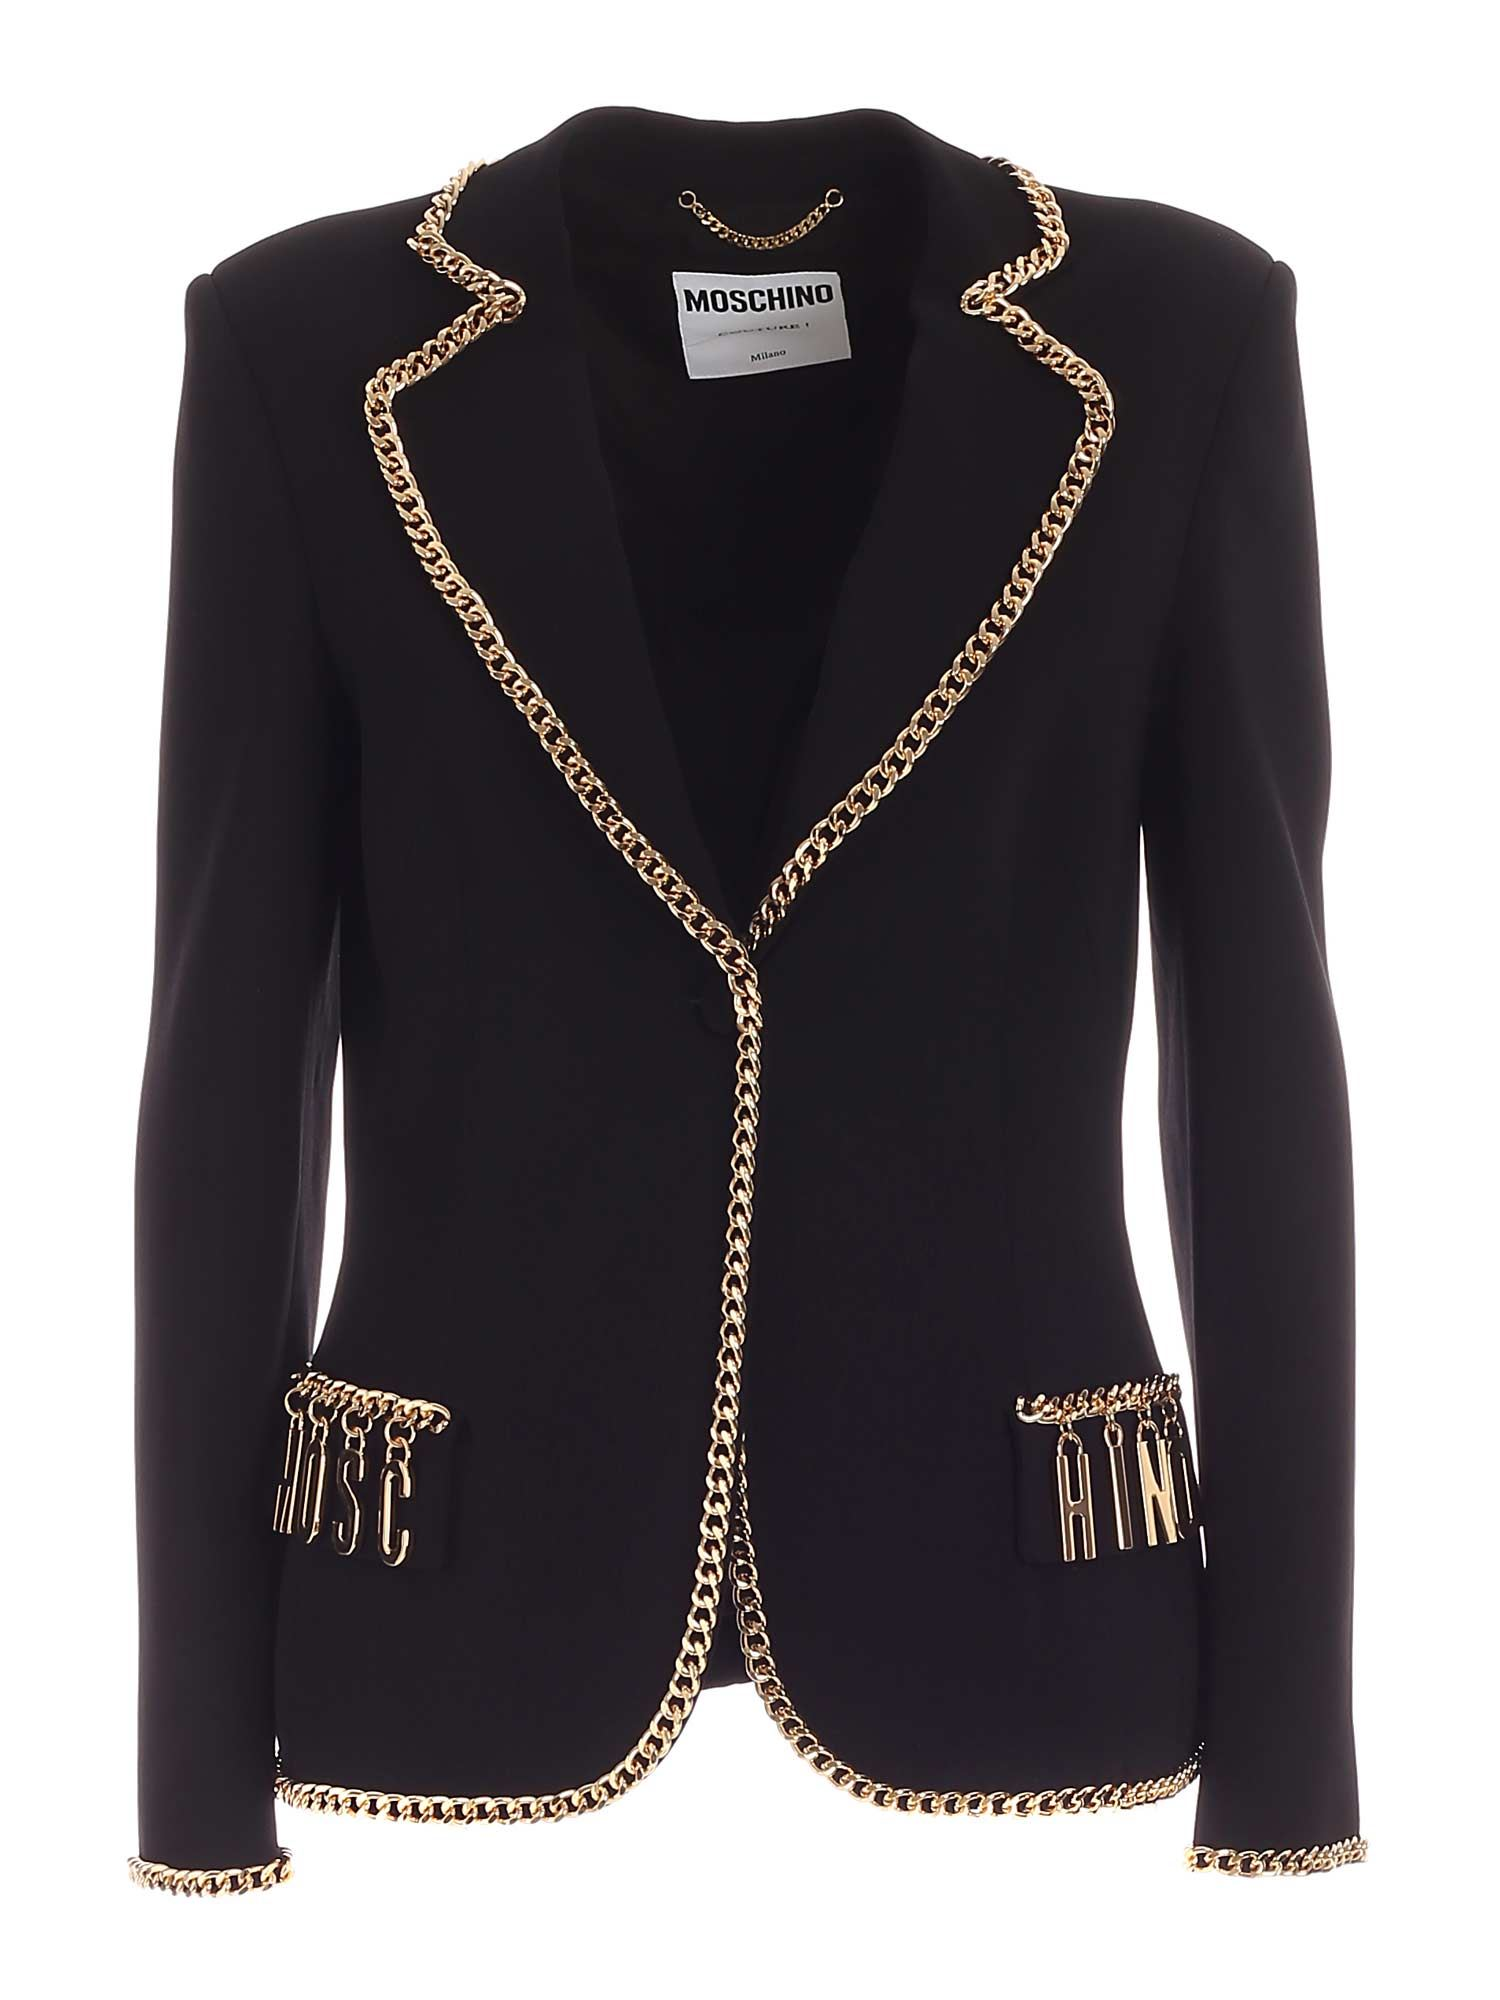 Moschino METAL DETAILS JACKET IN BLACK